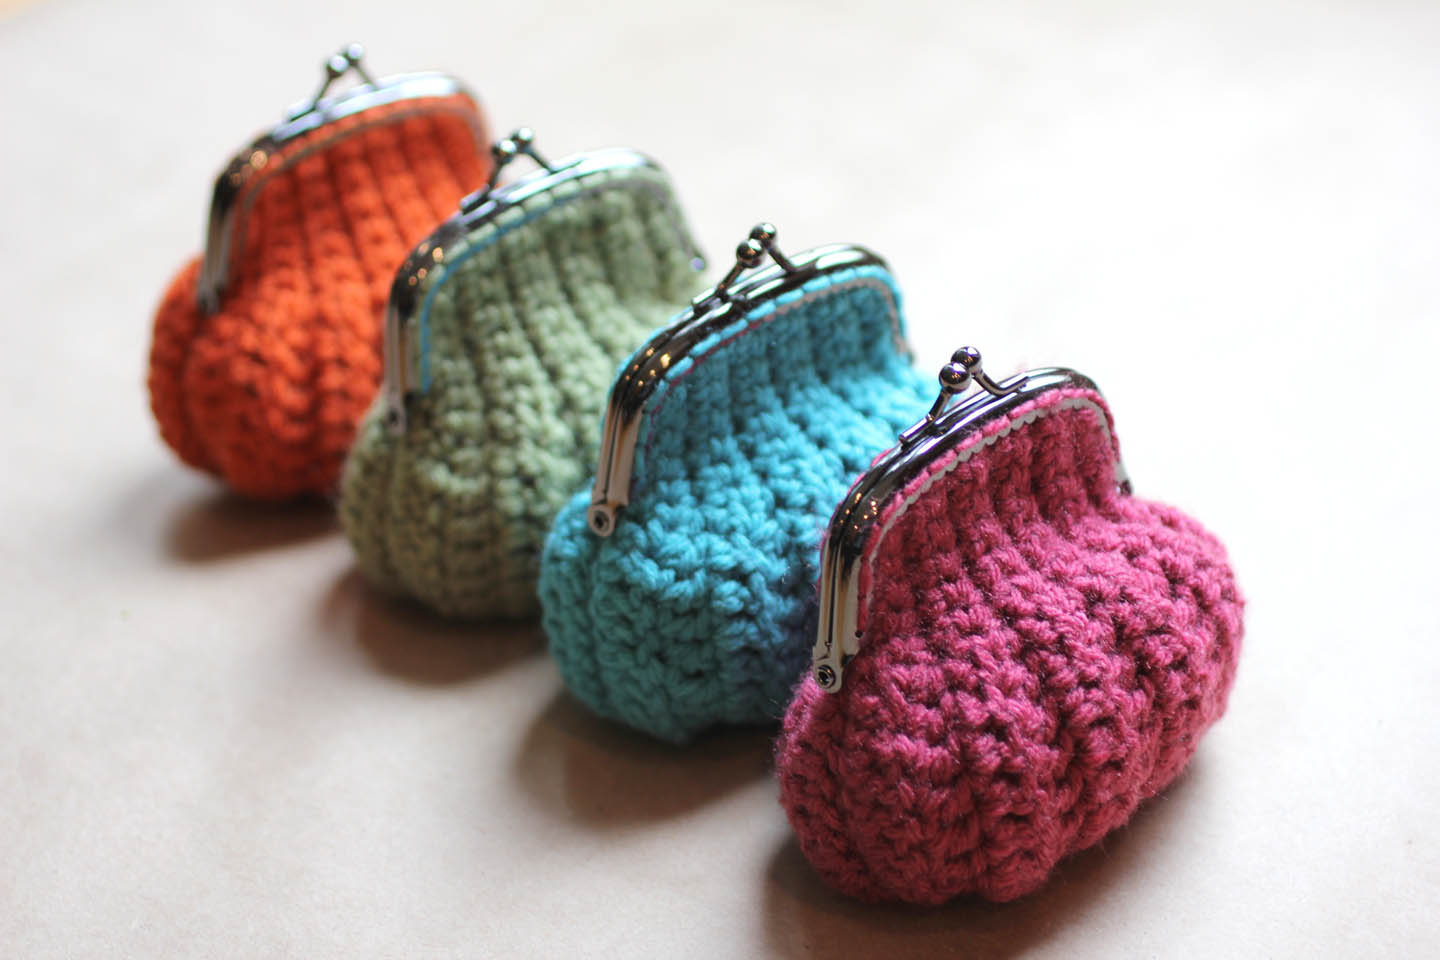 Crochet coin purse repeat crafter me i love when a crochet pattern is easy and the end product turns out so completely perfect like these crochet coin purses they pattern was simple and bankloansurffo Image collections